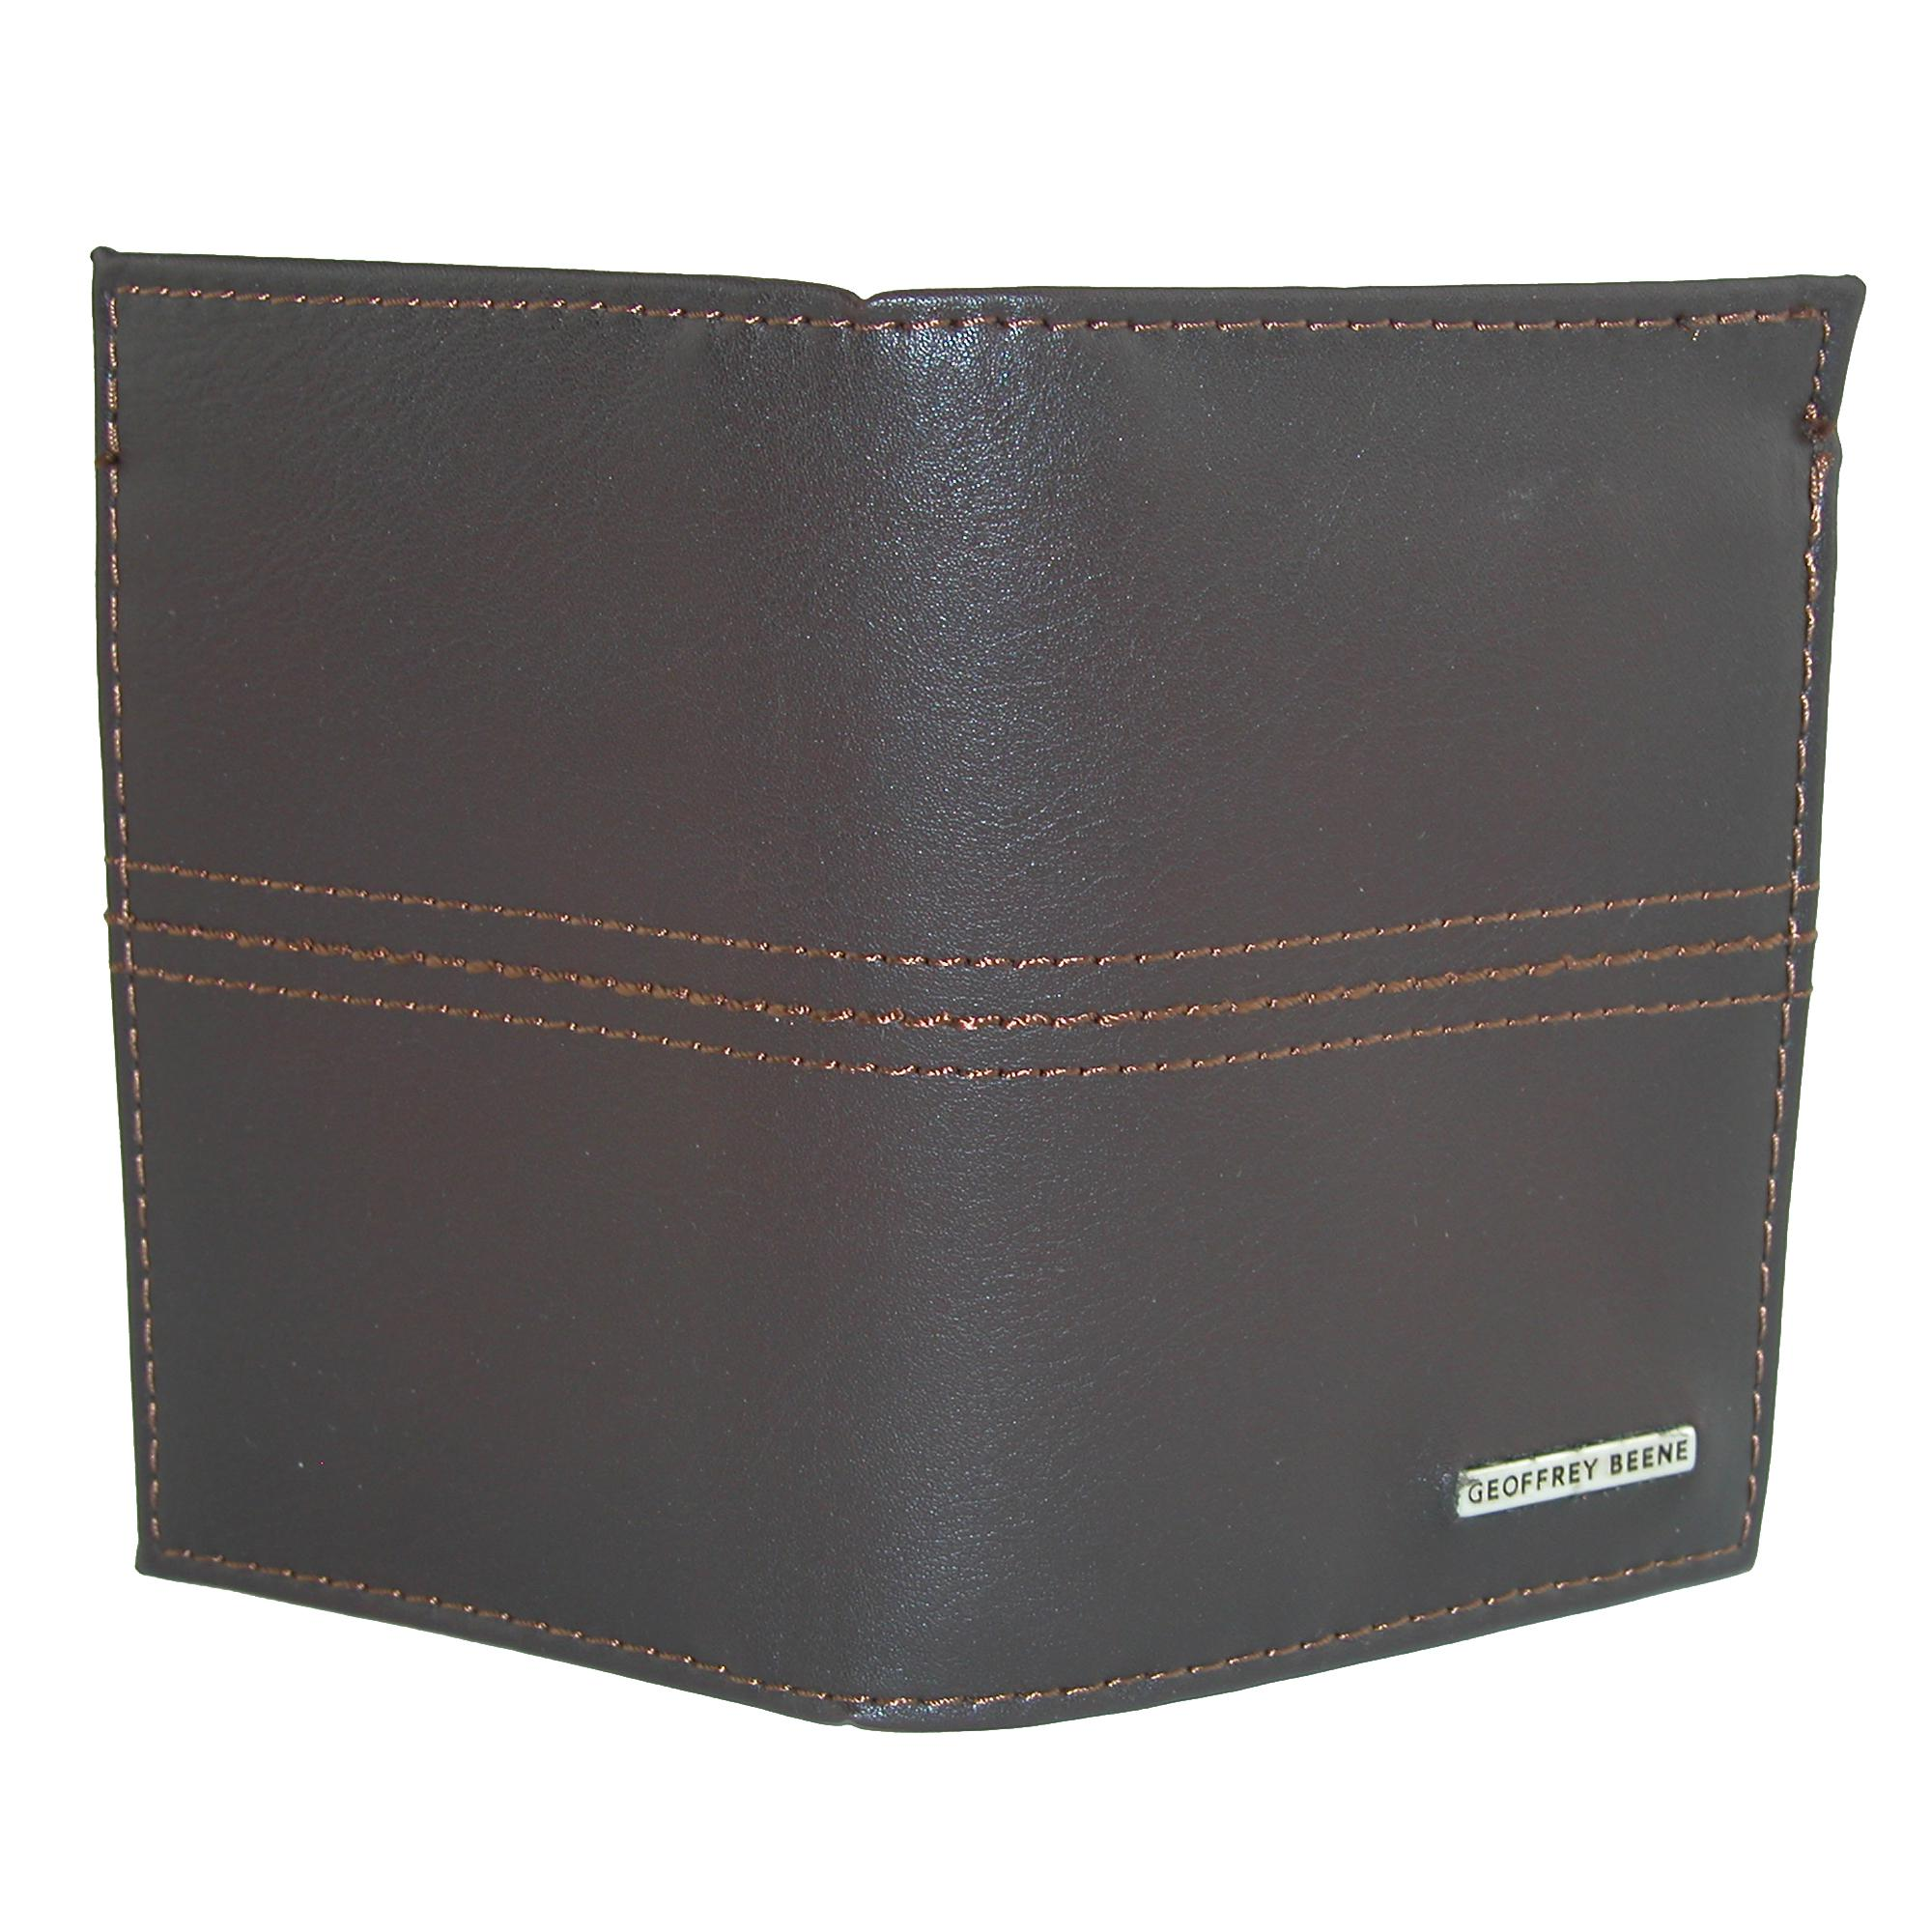 4c1f05cb5834 New Geoffrey Beene Men s Leather RFID Protected L-Fold Wallet